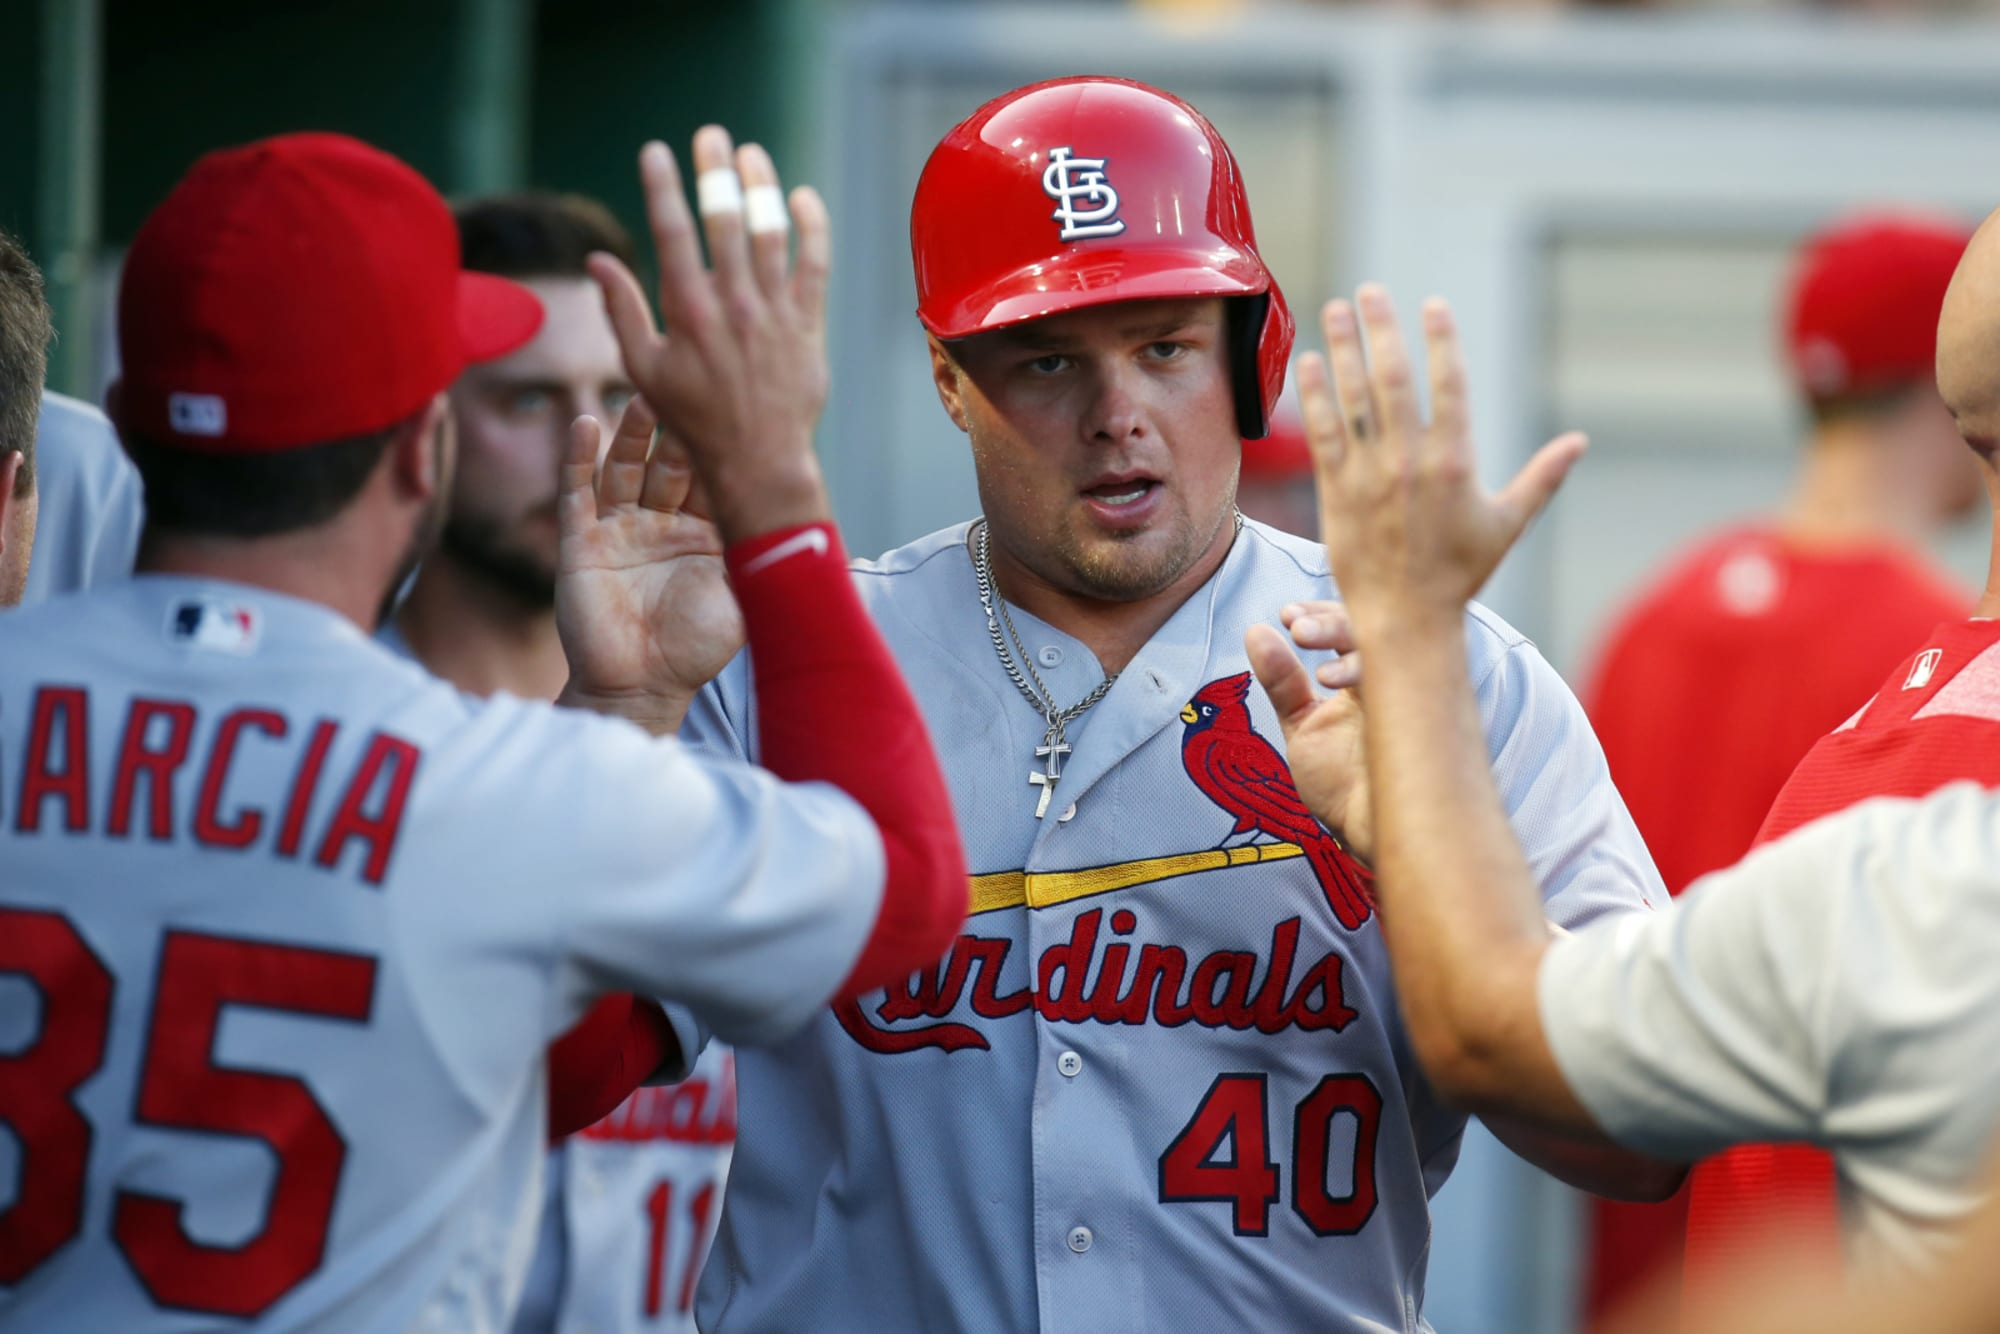 St. Louis Cardinals: Want young talent? Mo is the man to call